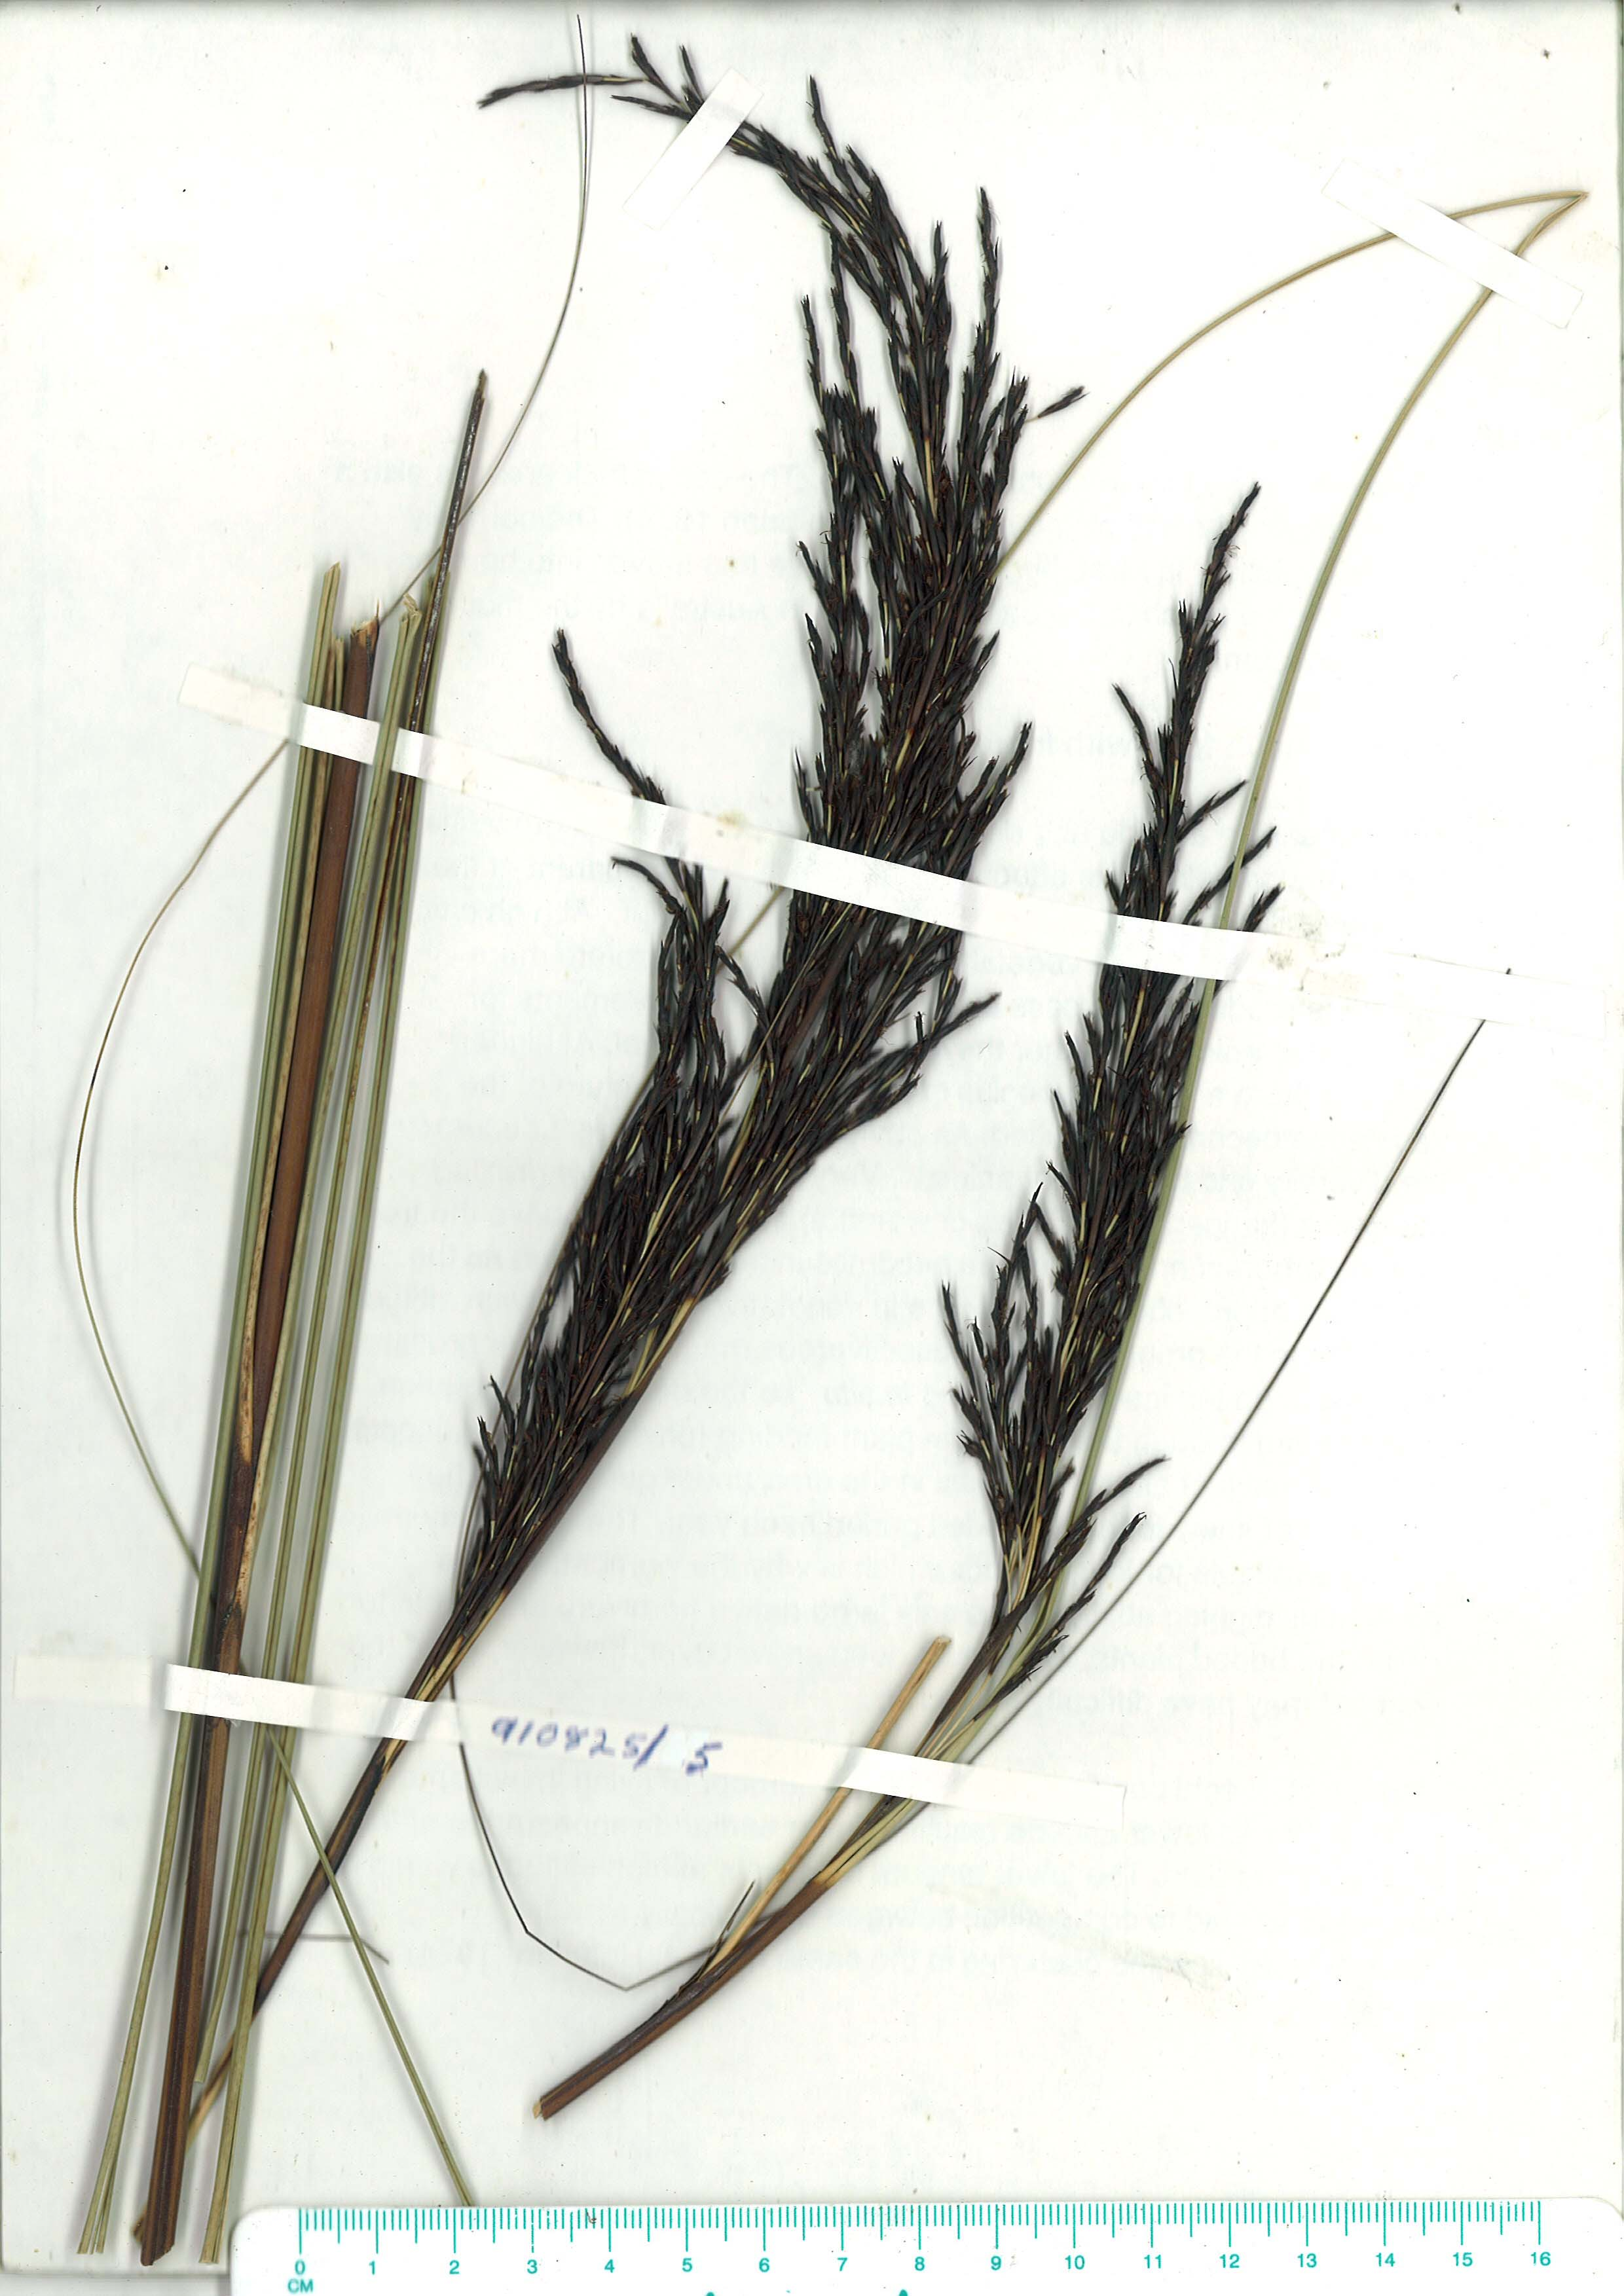 Scanned herbarium image of Gahnia radula